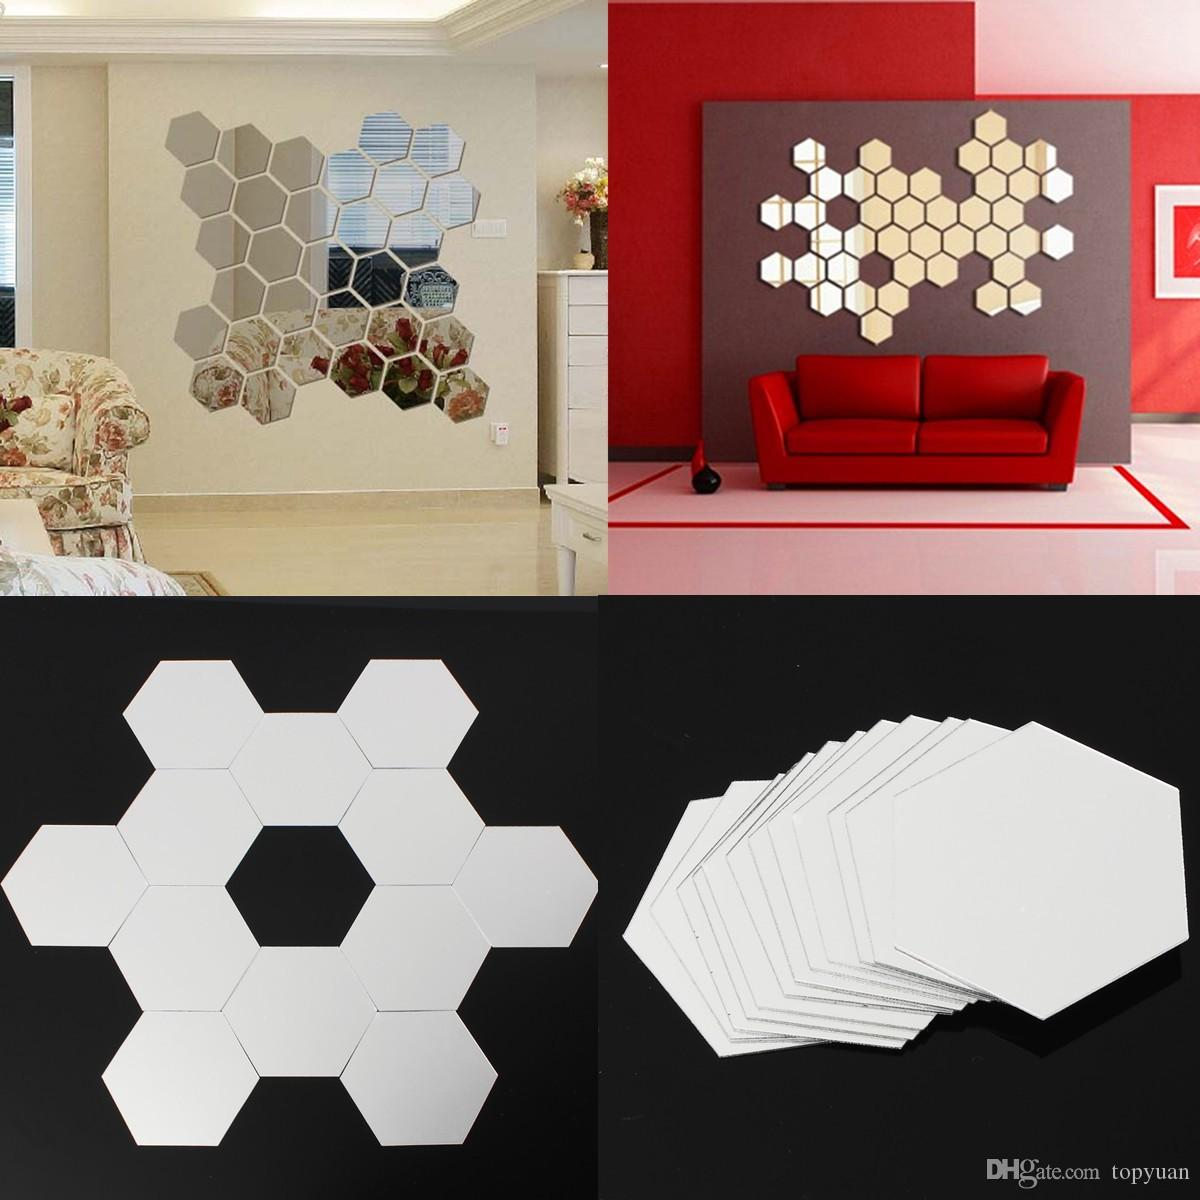 Mirror Wall Sticker Hexagon Removable Acrylic 3D Mirror DIY Home Room Decor Art